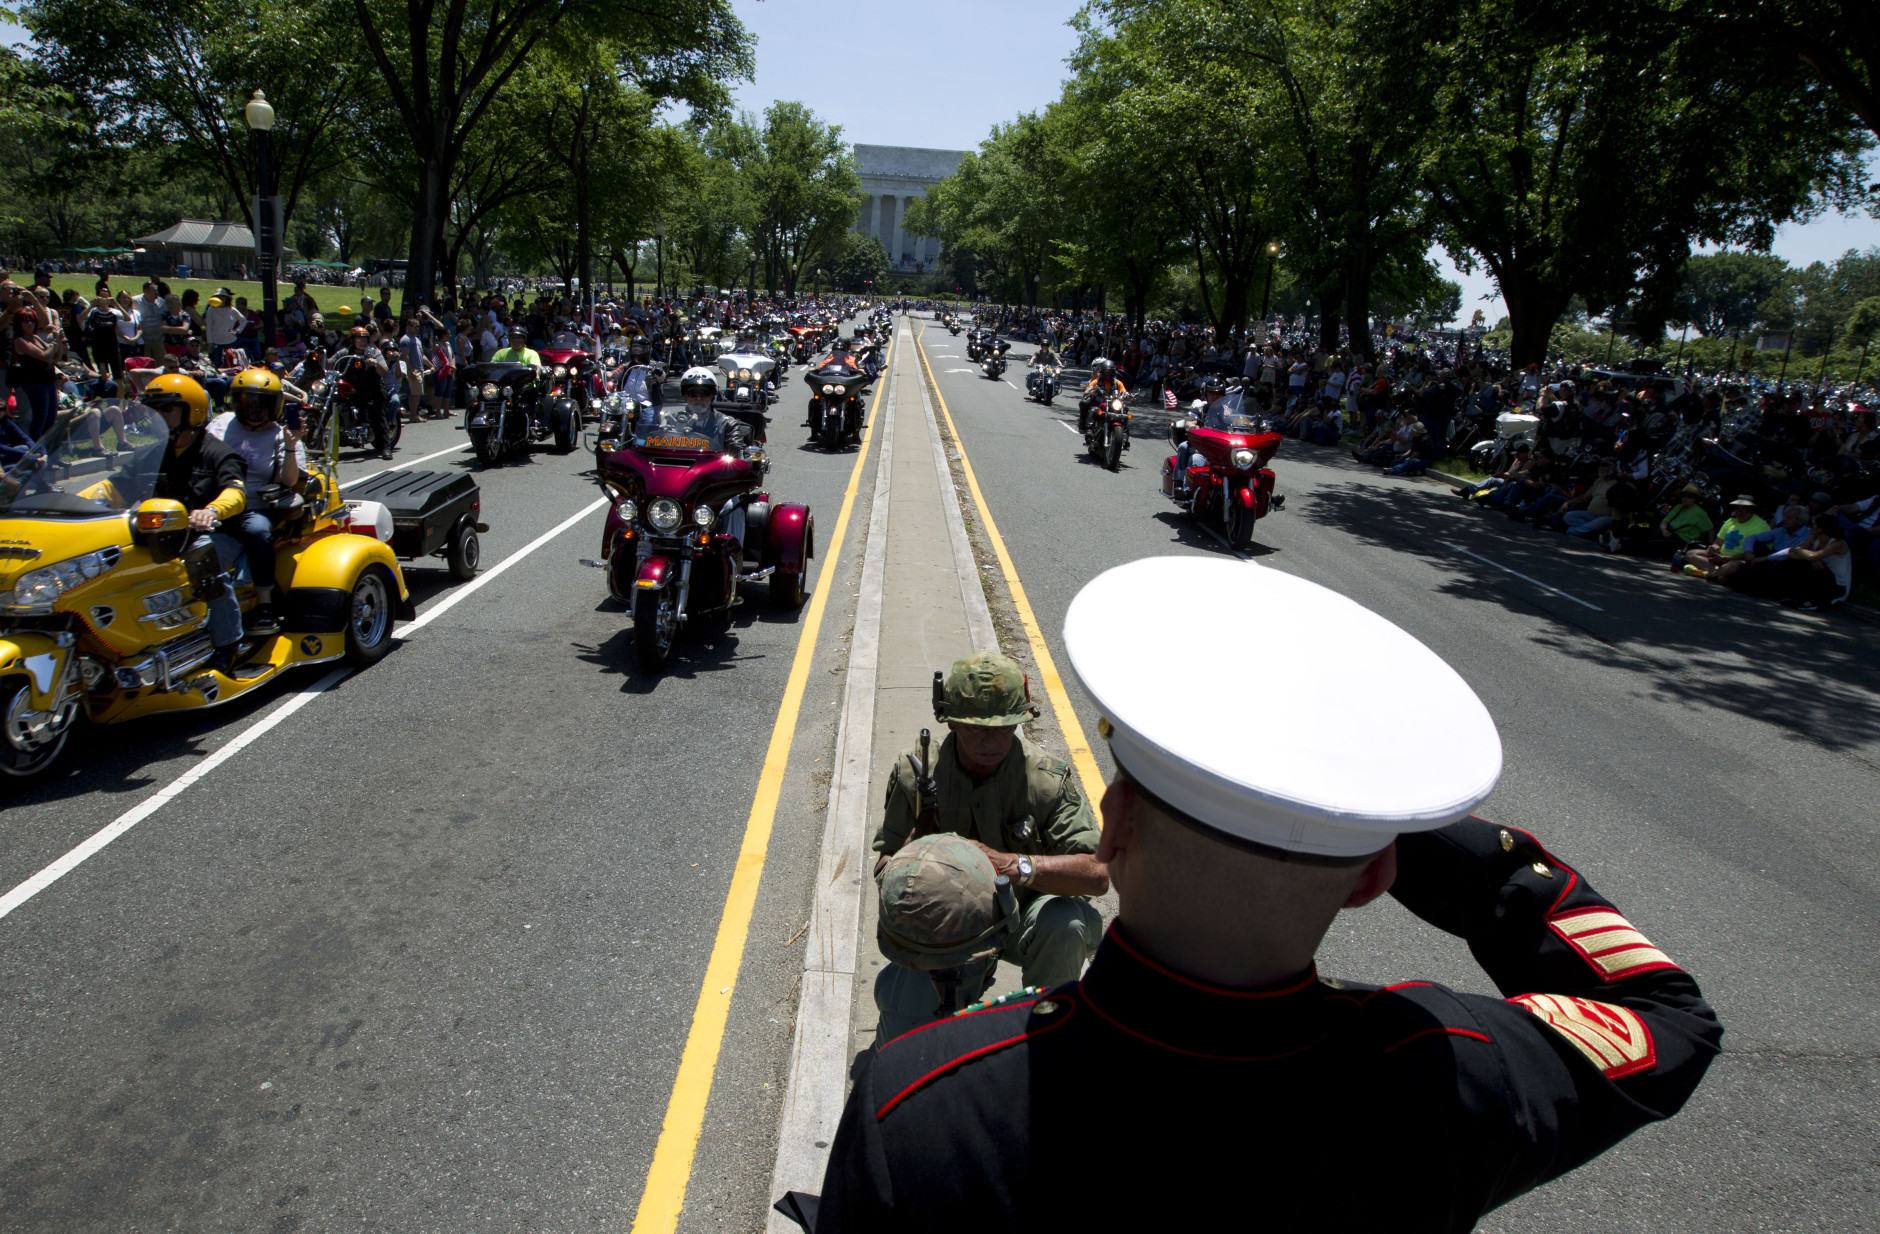 CORRECTS SPELLING TO TIM NOT TIME   Marine Tim Chamber and Army Eric Cantu salutes as motorcycles drive past during the annual Rolling Thunder parade ahead of Memorial Day in Washington, Sunday, May 24, 2015. (AP Photo/Jose Luis Magana)